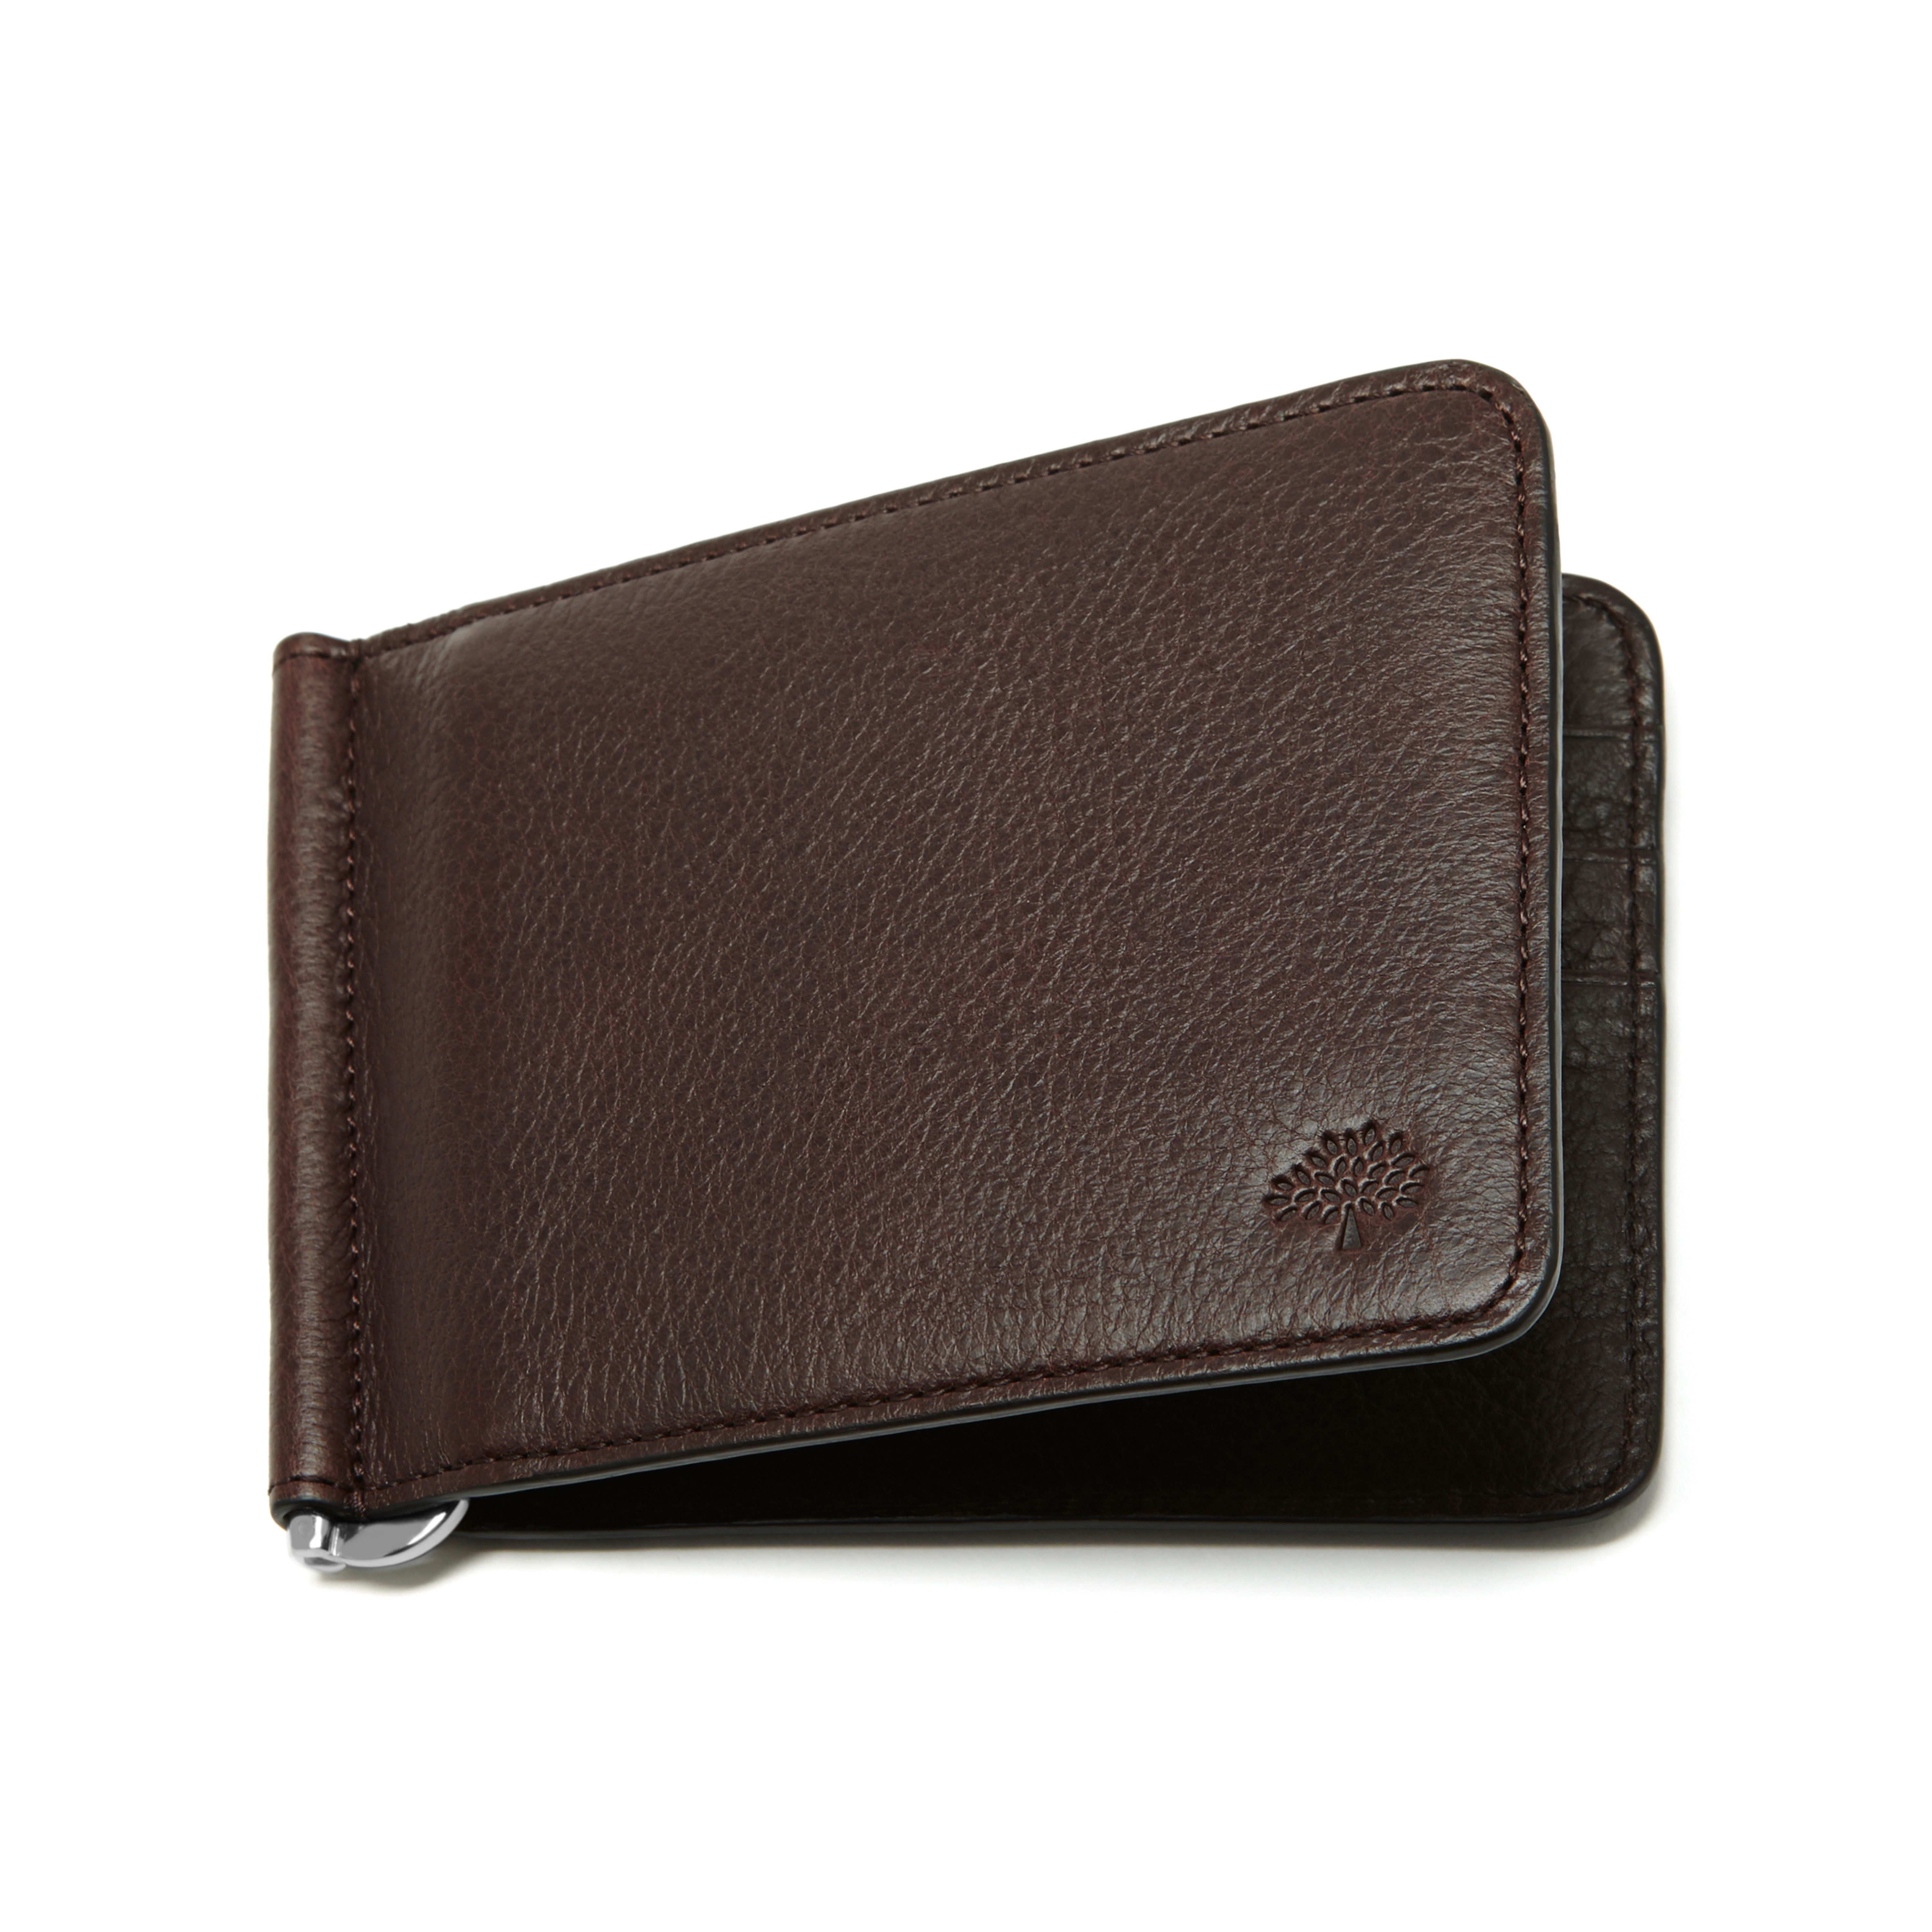 7904e3c36065 Lyst - Mulberry Money Clip Wallet in Brown for Men